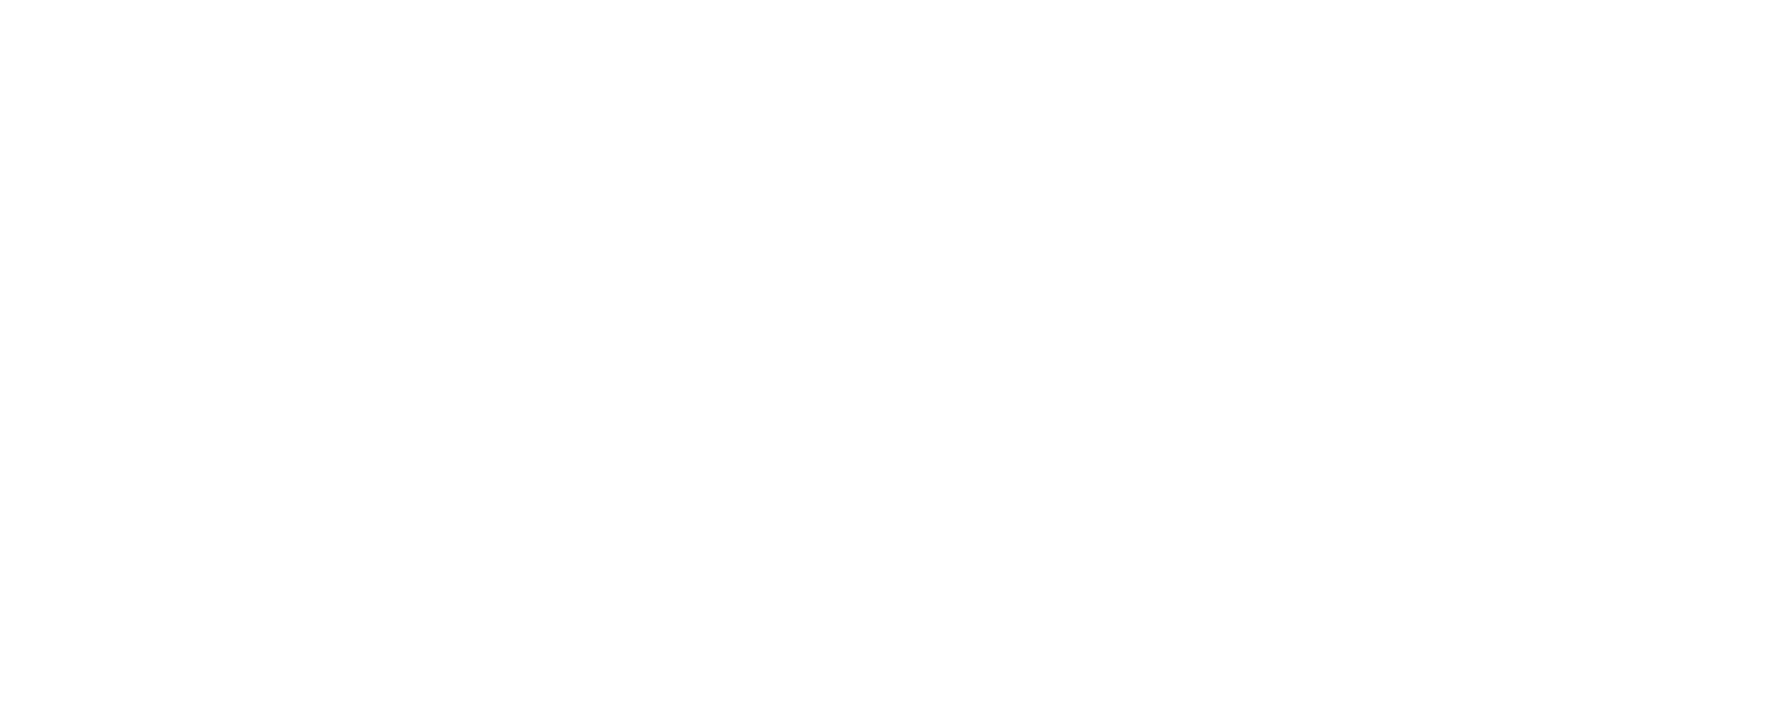 Horsham District Wellbeing Logo white